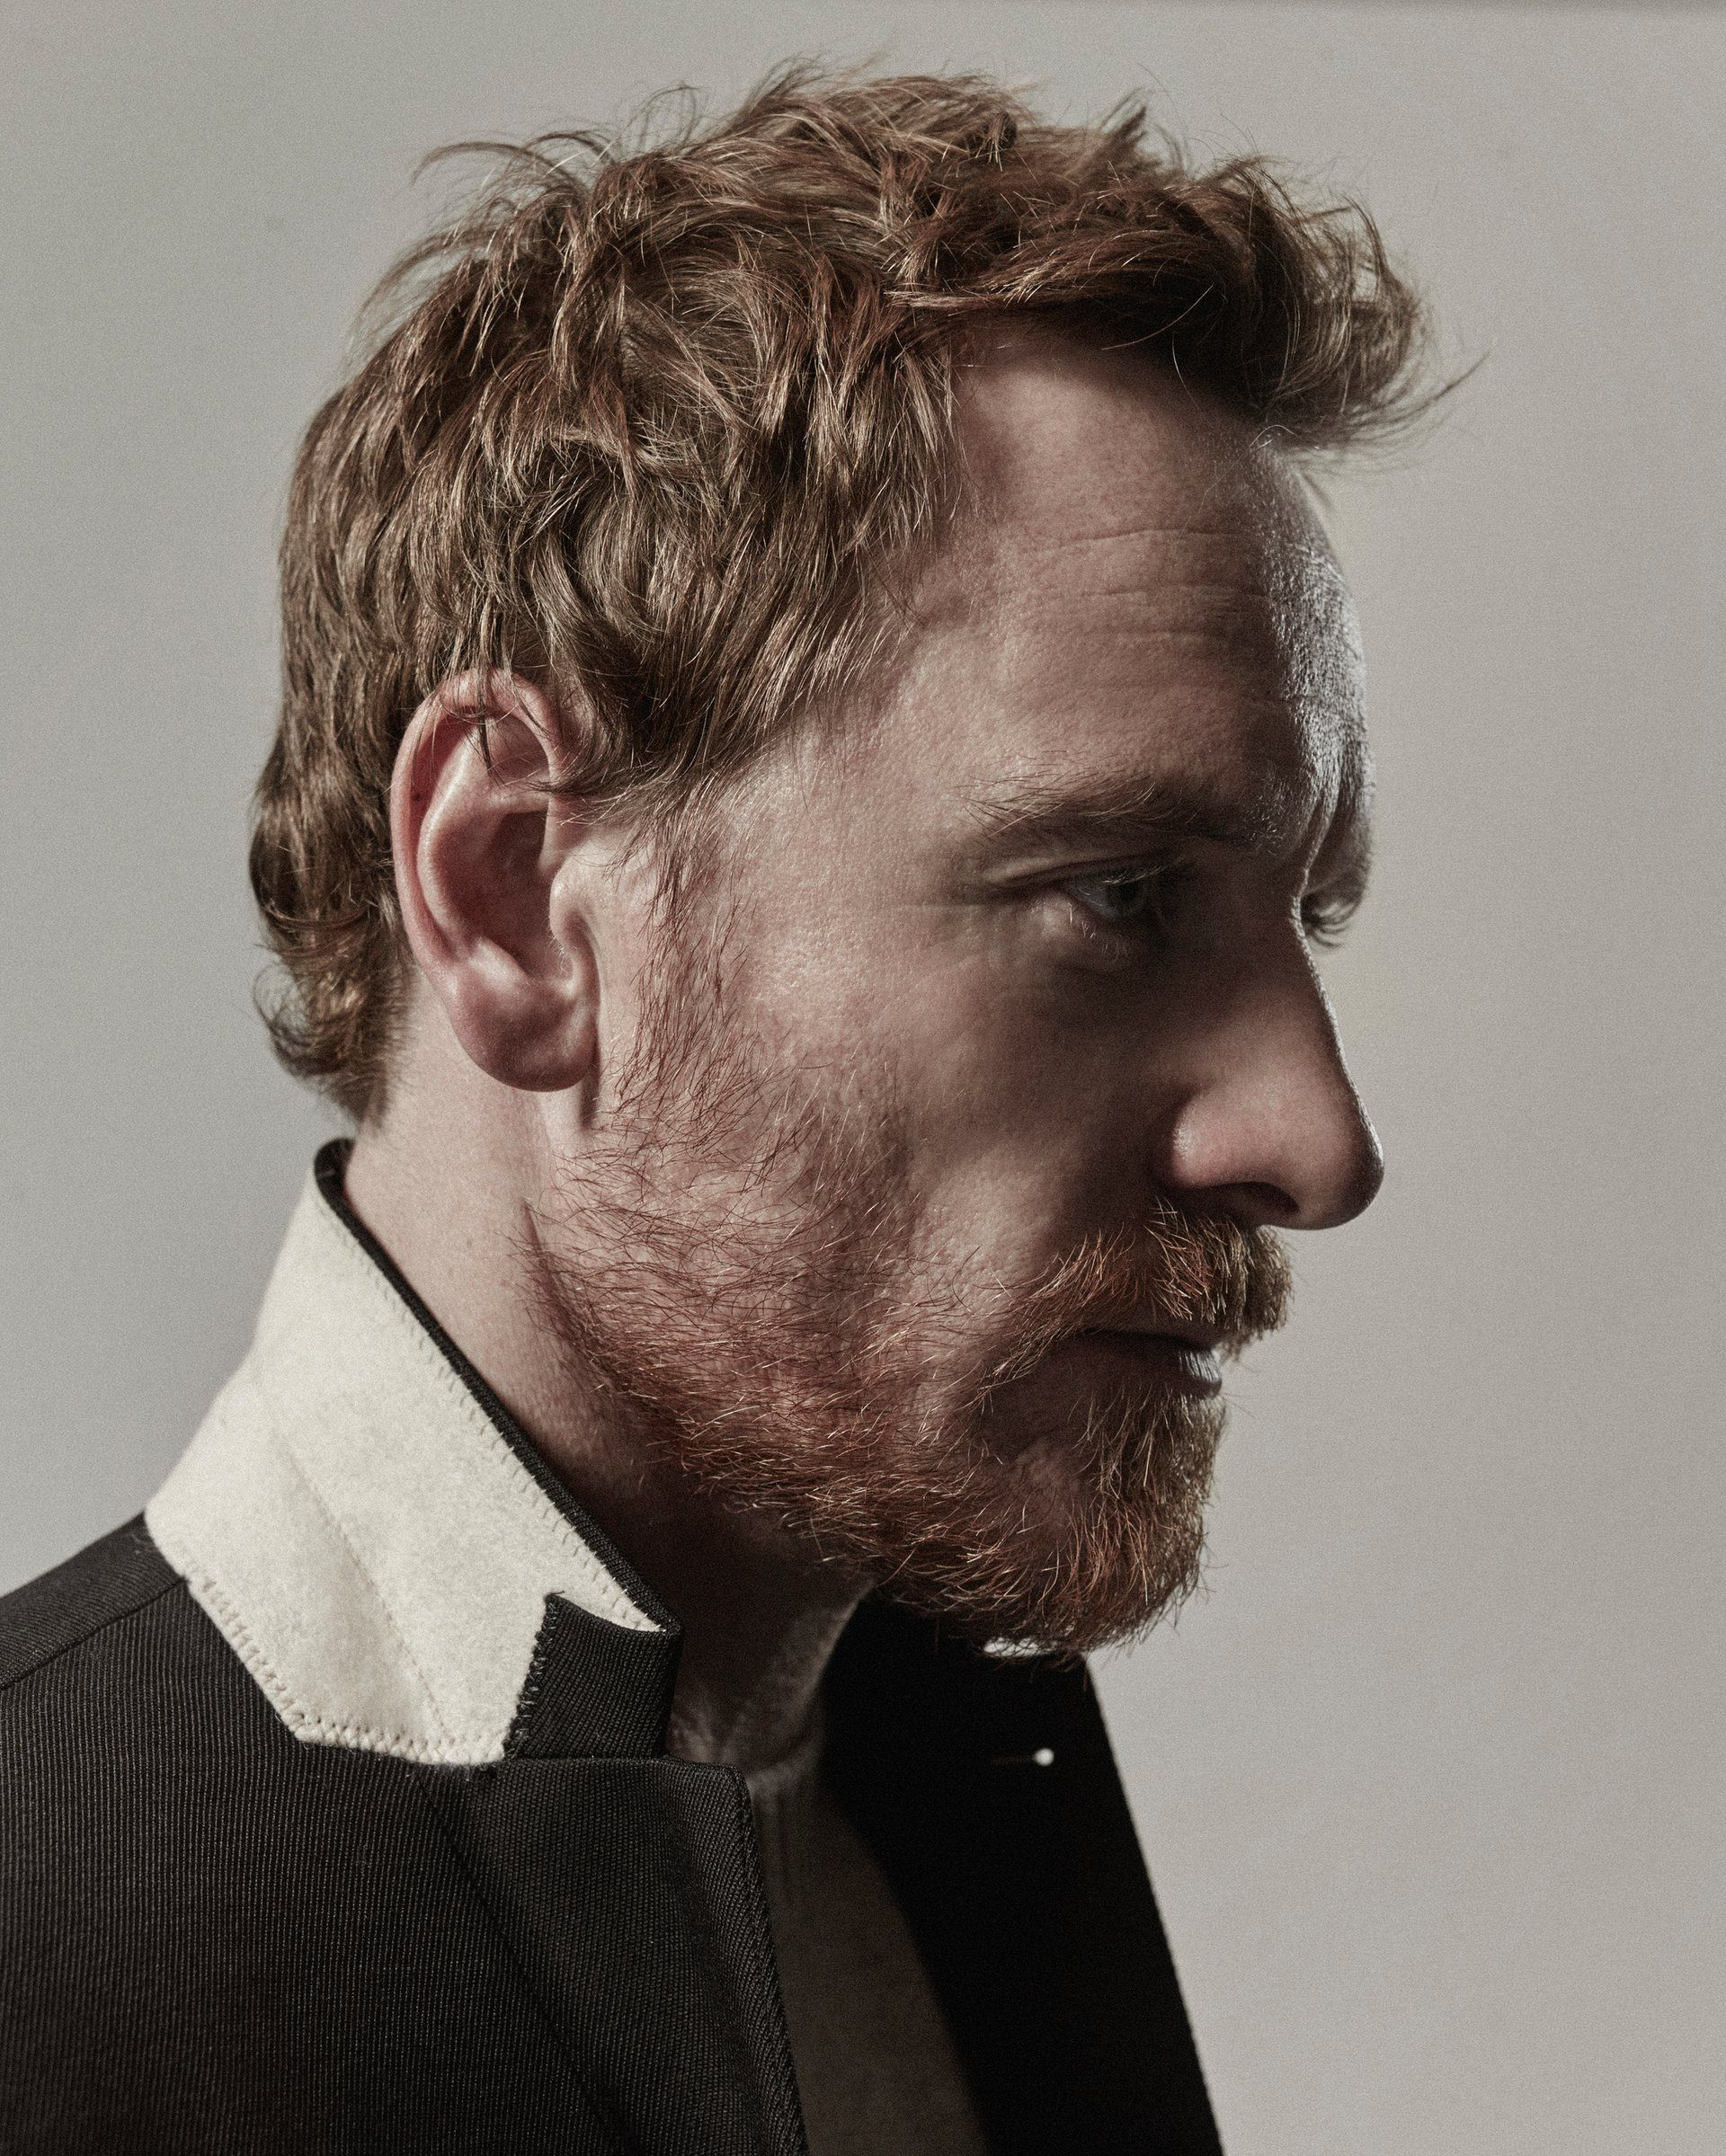 Michael Fassbender for The Guardian, photographed by Brendan Freeman